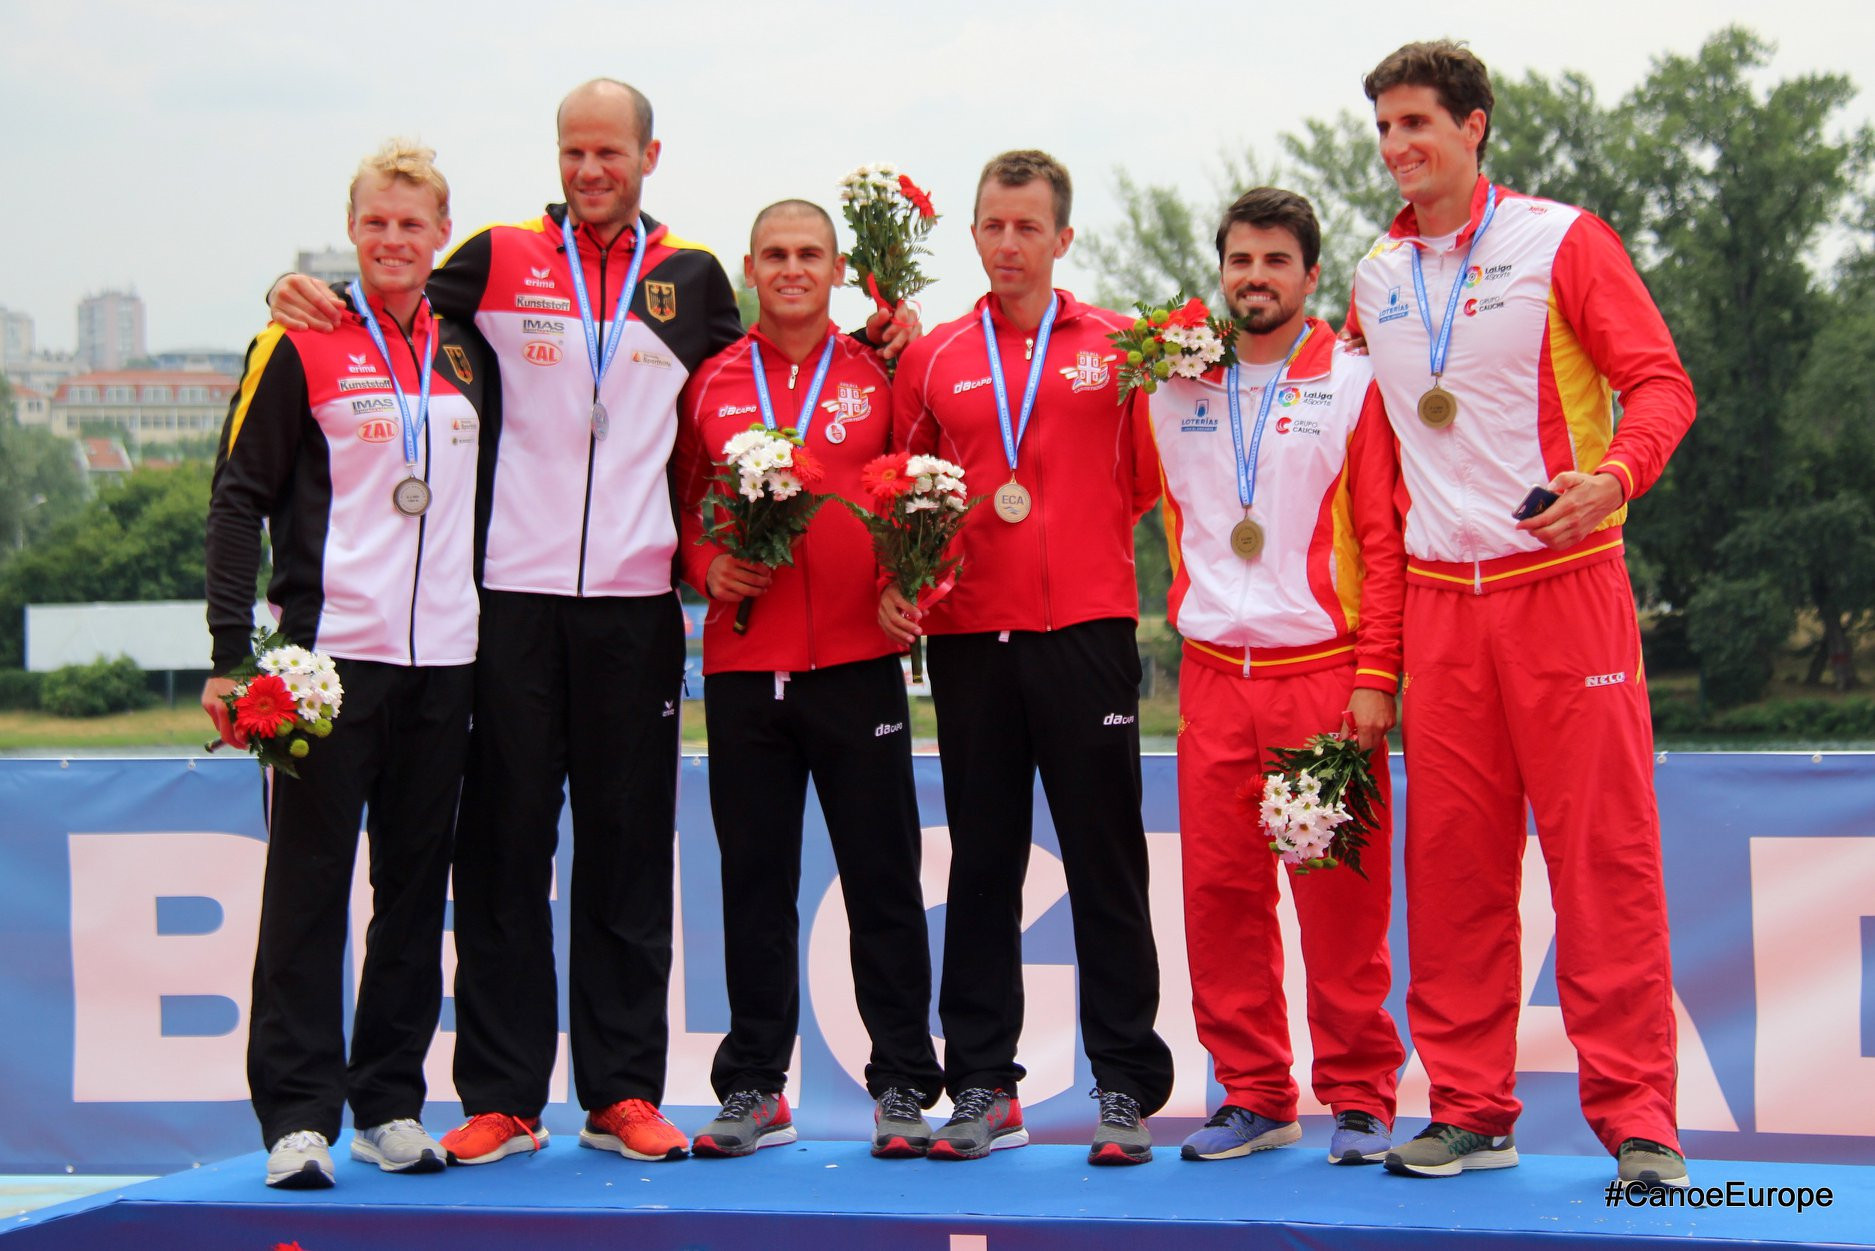 Home success for Serbia at European Canoe Sprint Championships